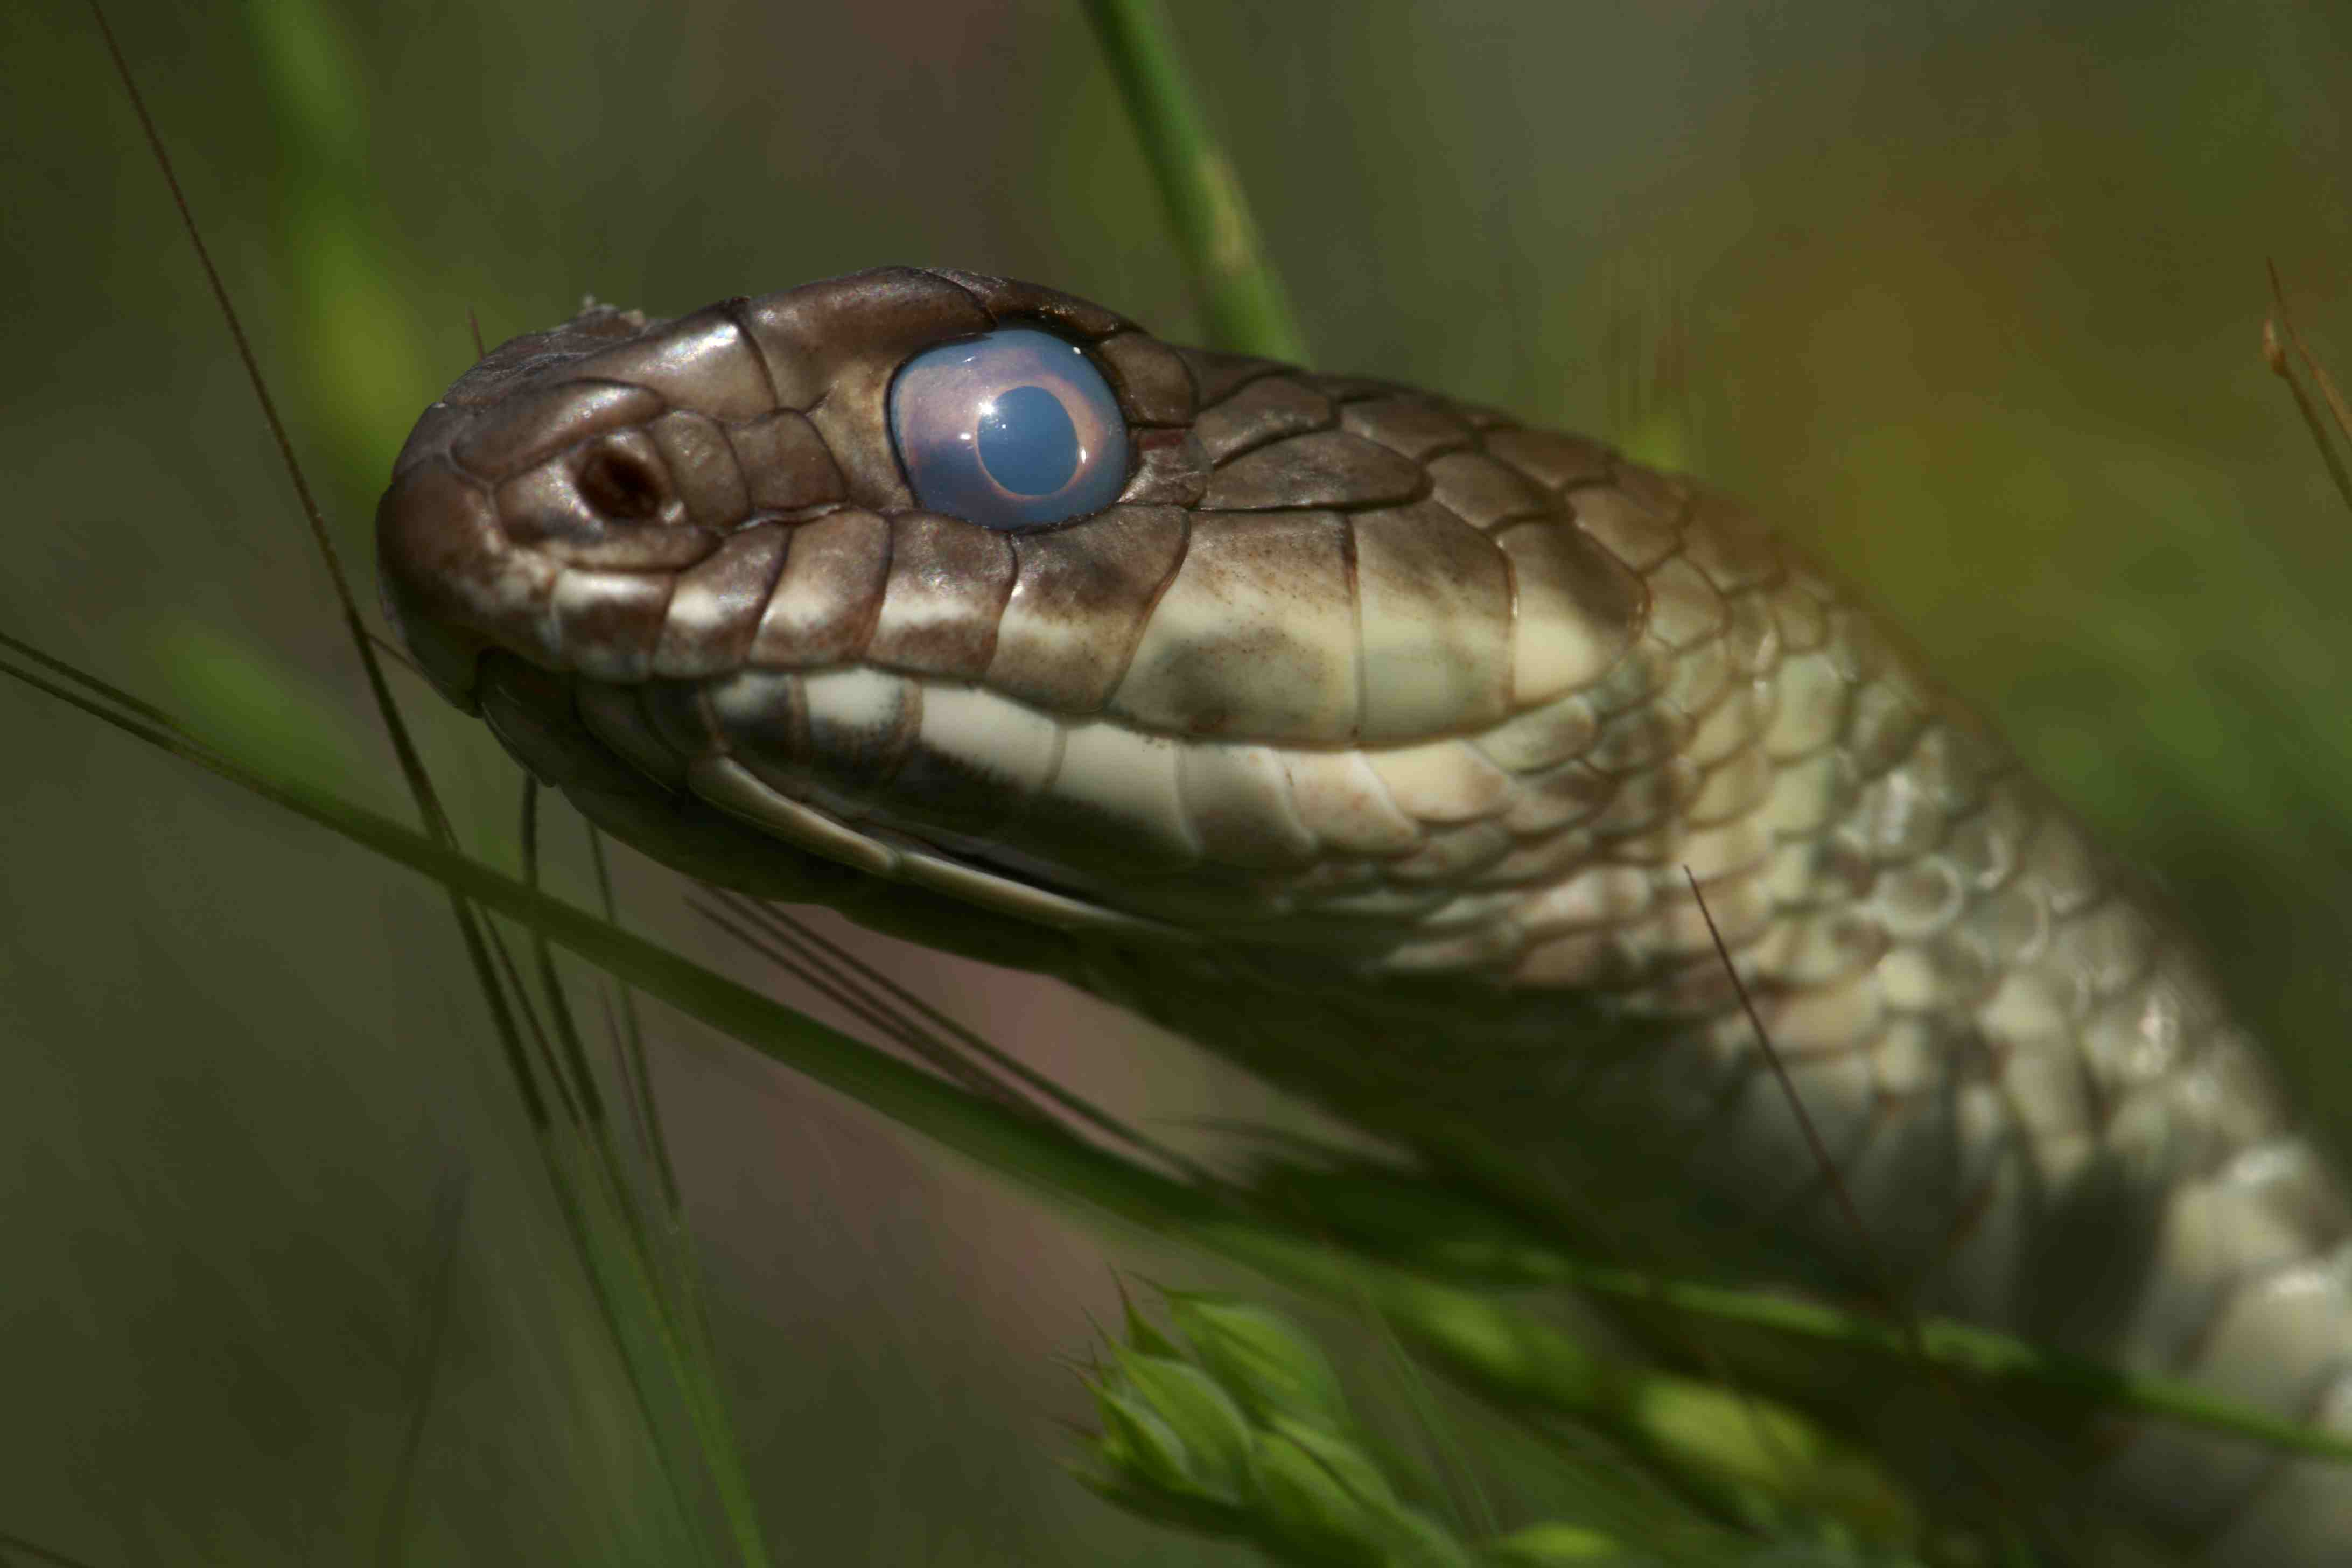 Montpellier snake (Malpolon monspessulanus) shortly before shedding its skin, The Peloponnese, Greece, May 2009